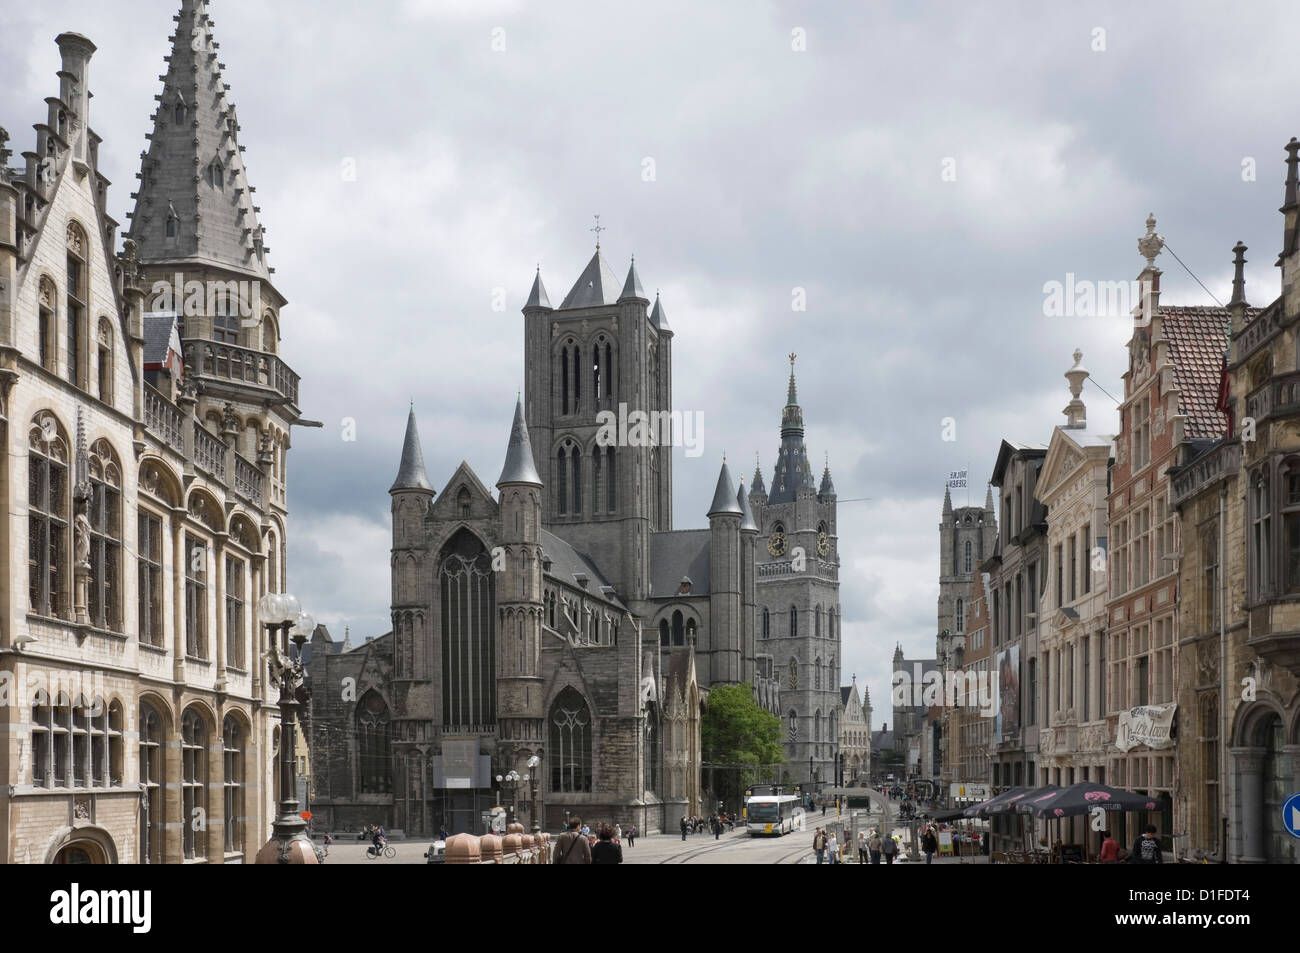 The Old Post Office on the left, St. Nickolas Church and the Belfry beyond, Ghent, Belgium, Europe Stock Photo